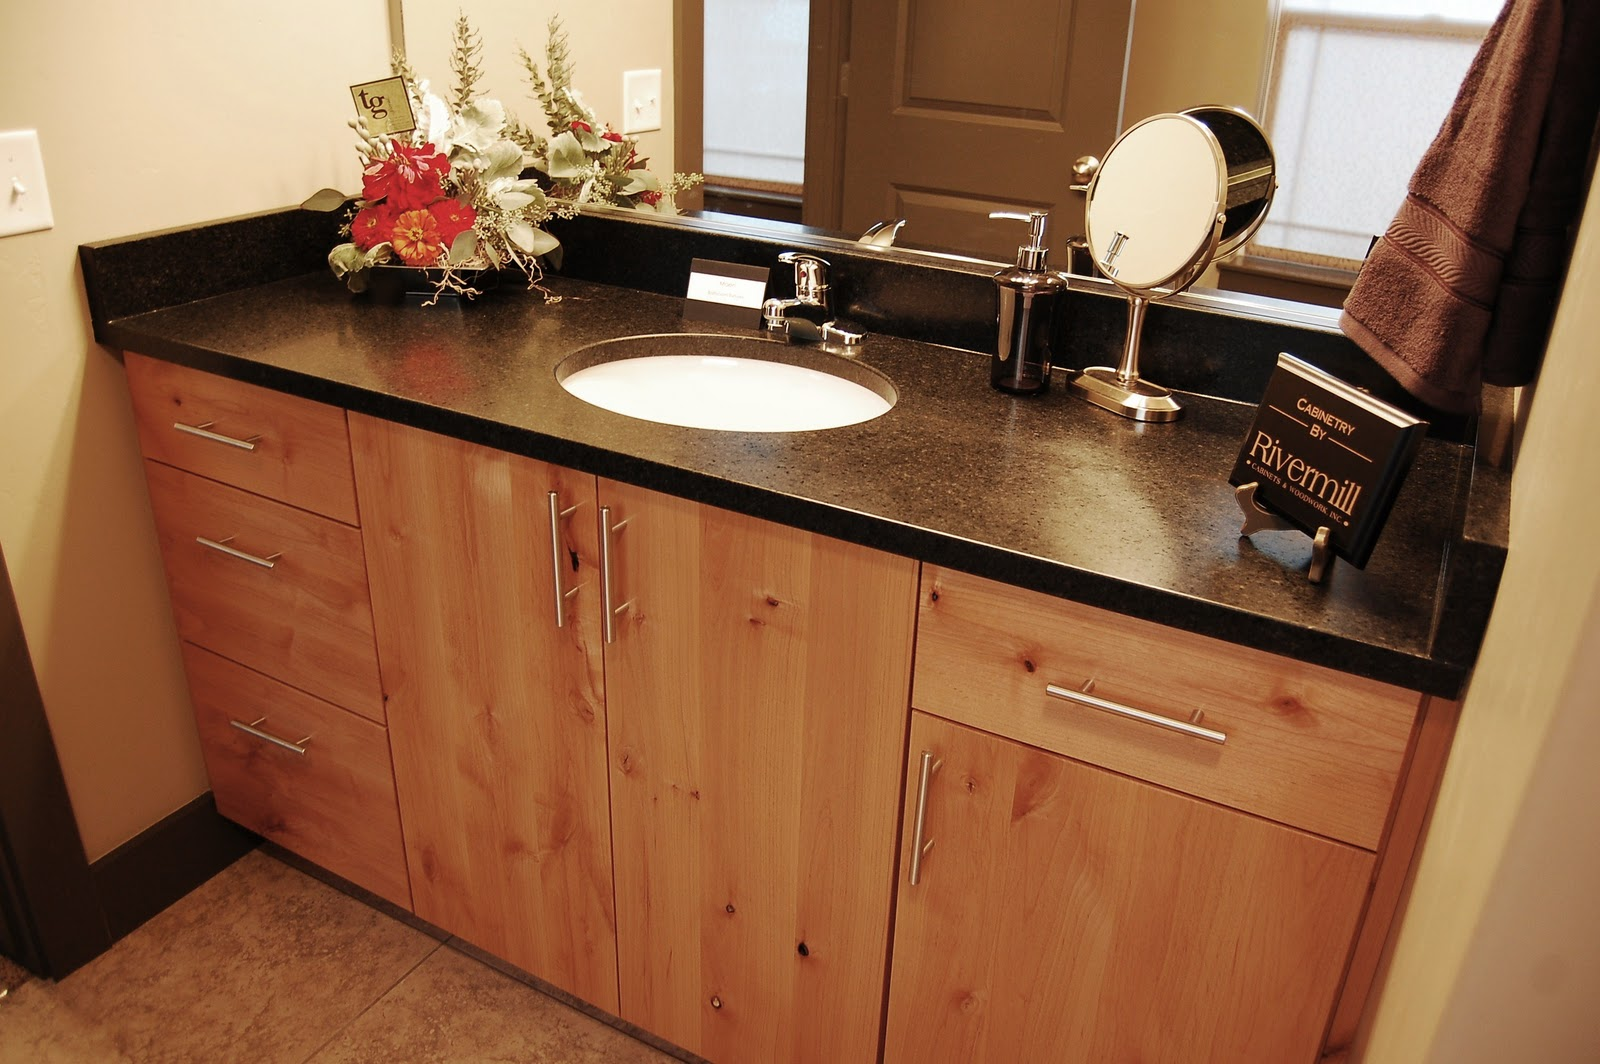 Sensational Rivermill Cabinets And Woodworks Inc Home Interior And Landscaping Oversignezvosmurscom